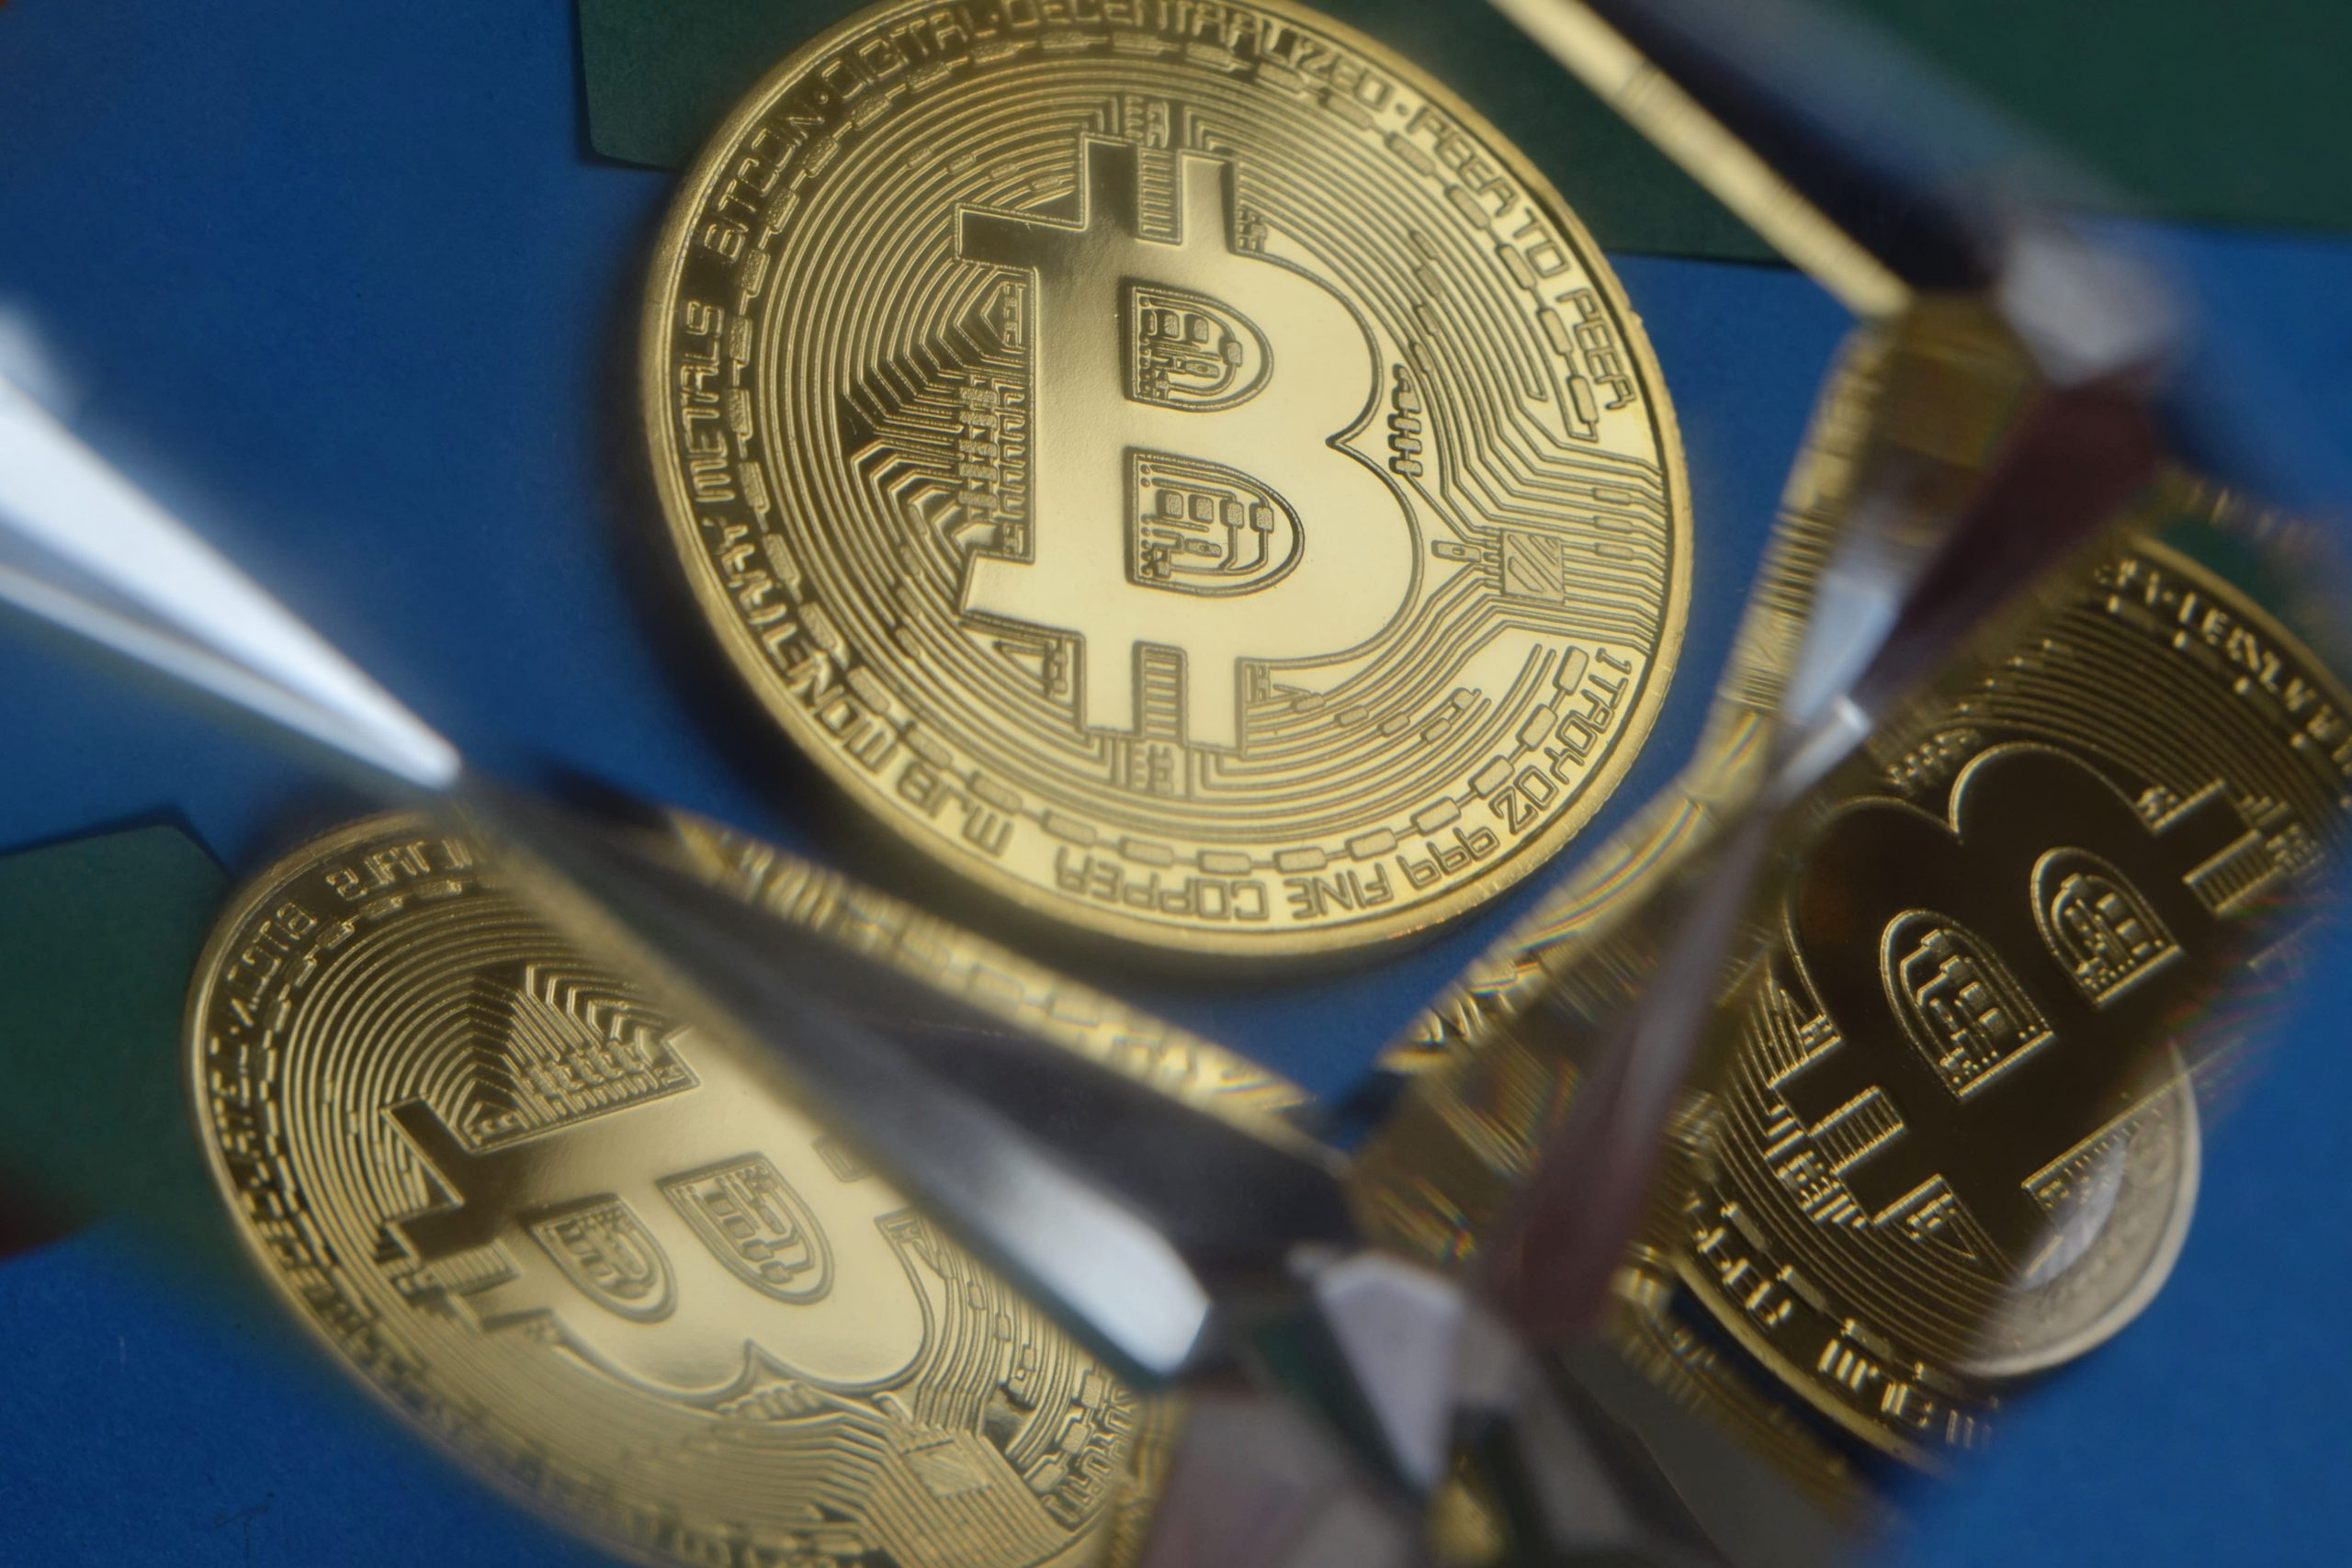 """Traders return coins to exchanges as Bitcoin moves lower, with CryptoQuant expecting a """"small"""" retracement below $9,000."""